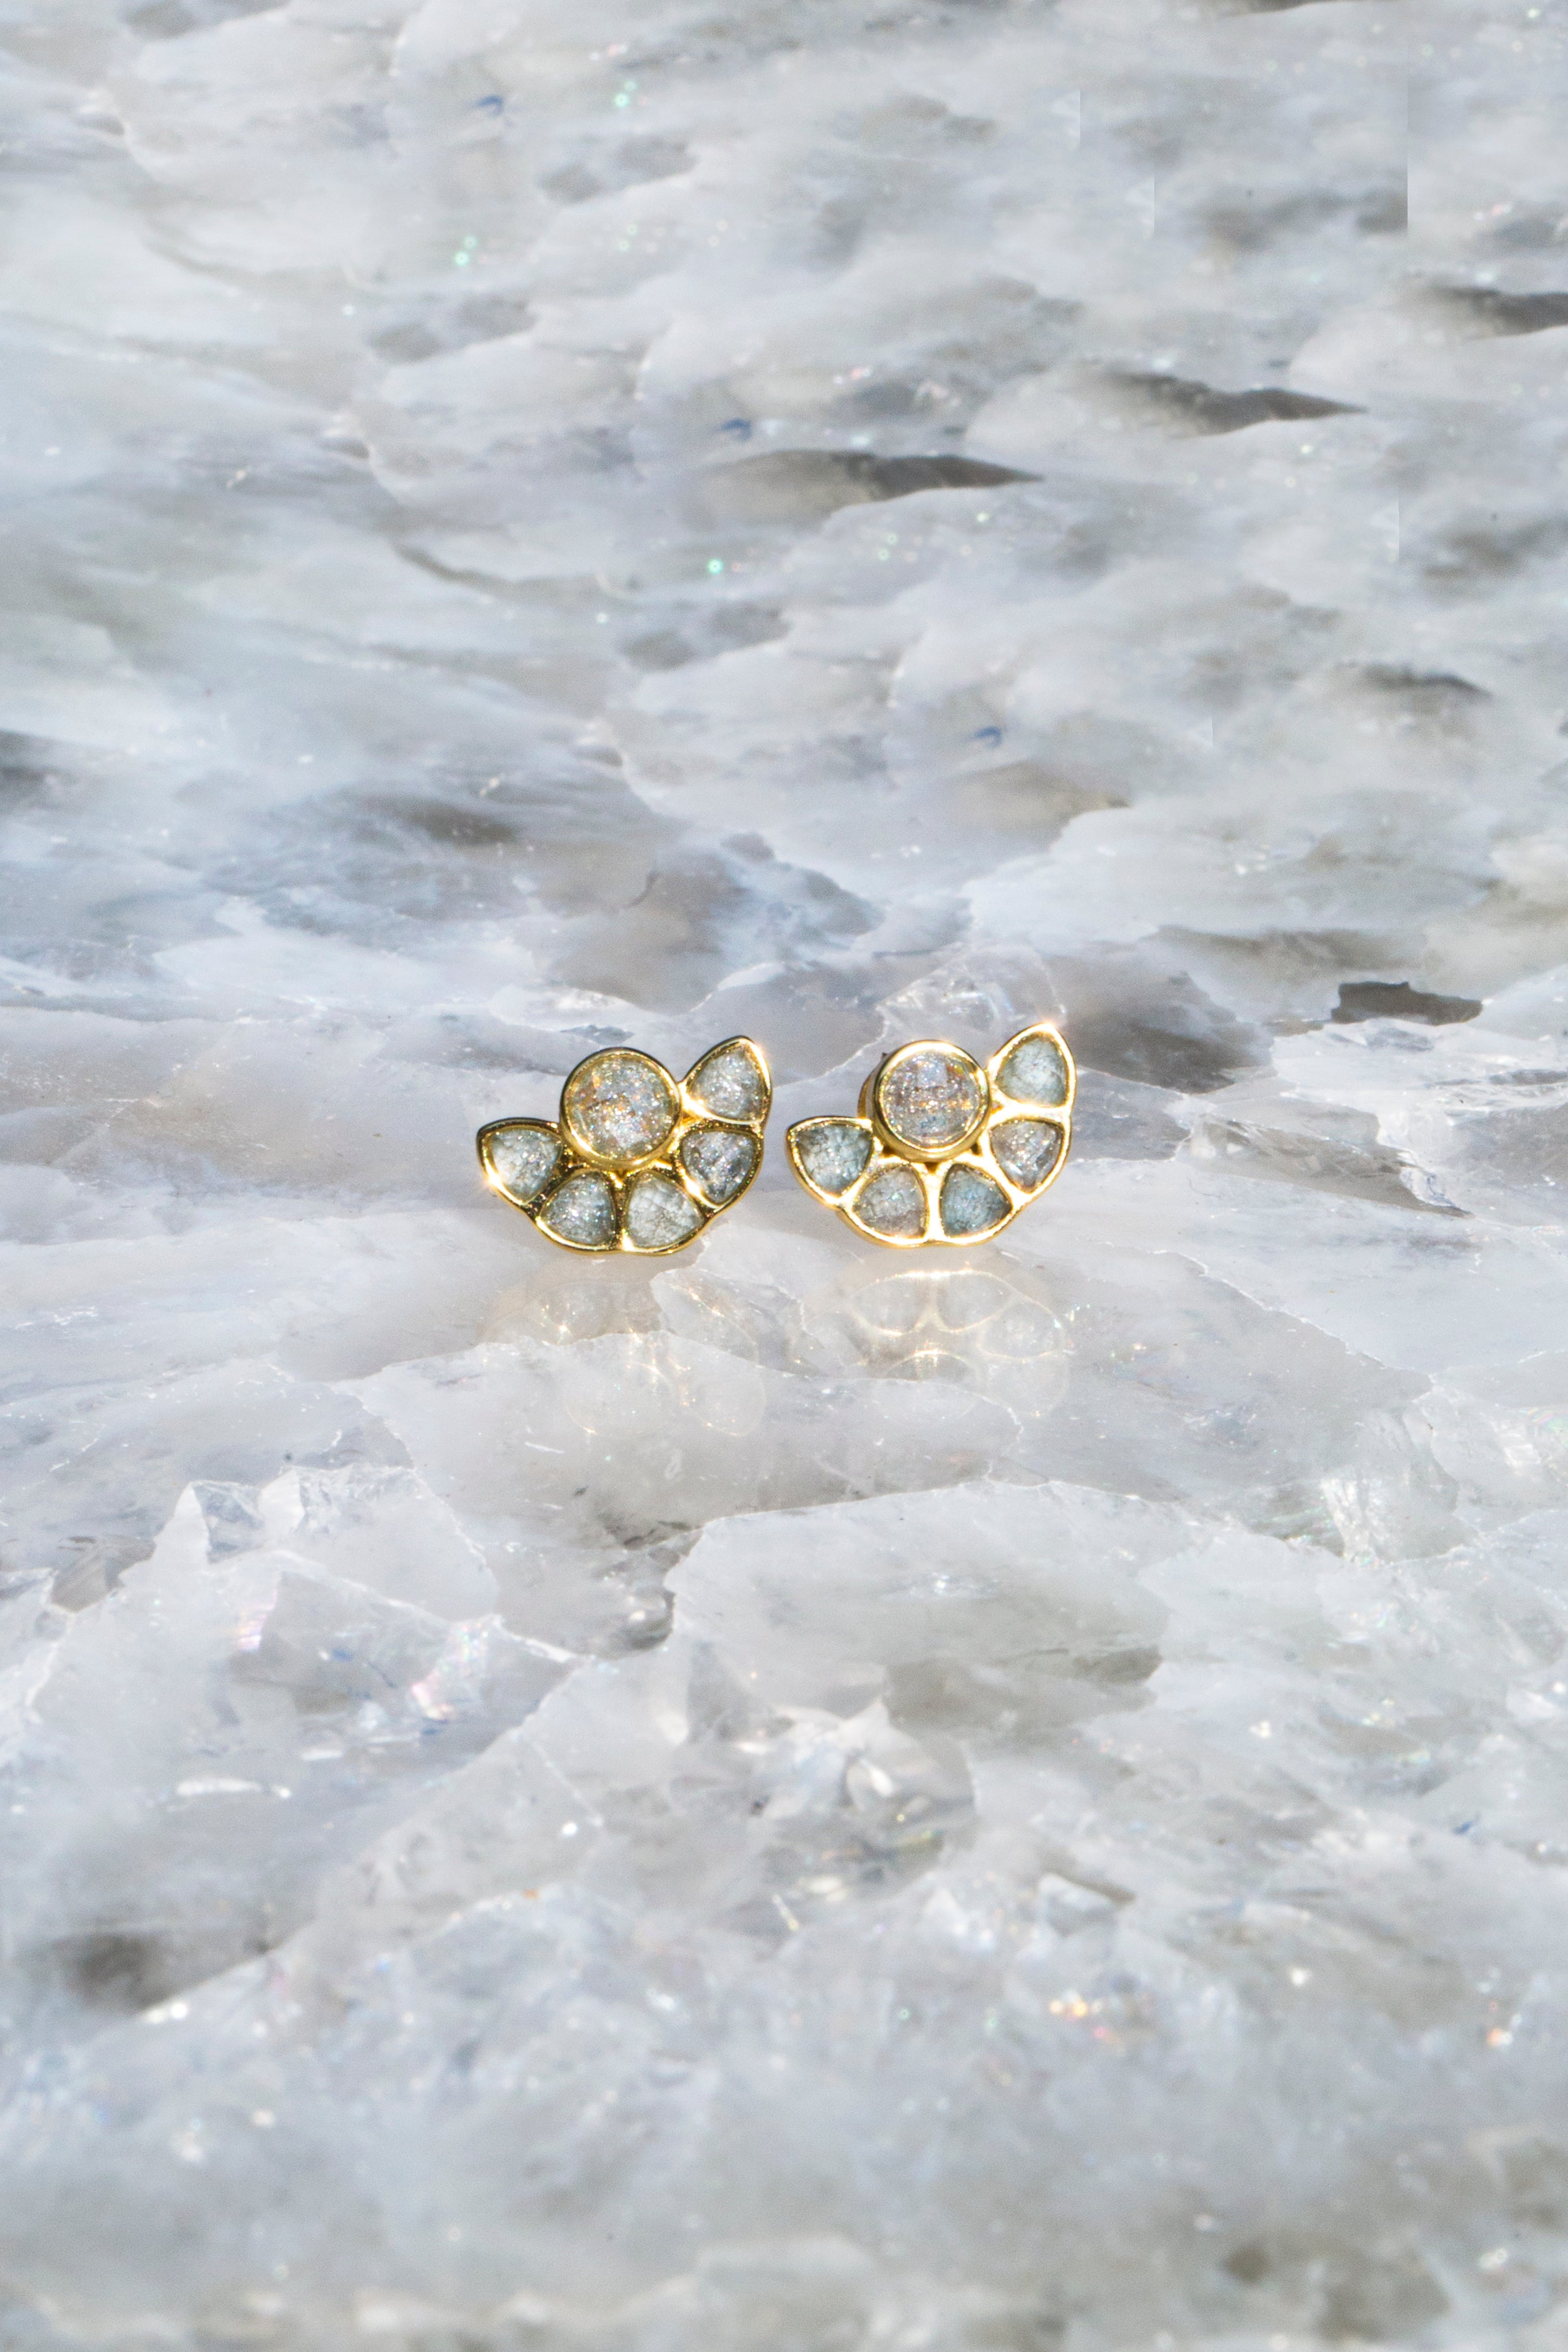 Multi stone deco stud earrings